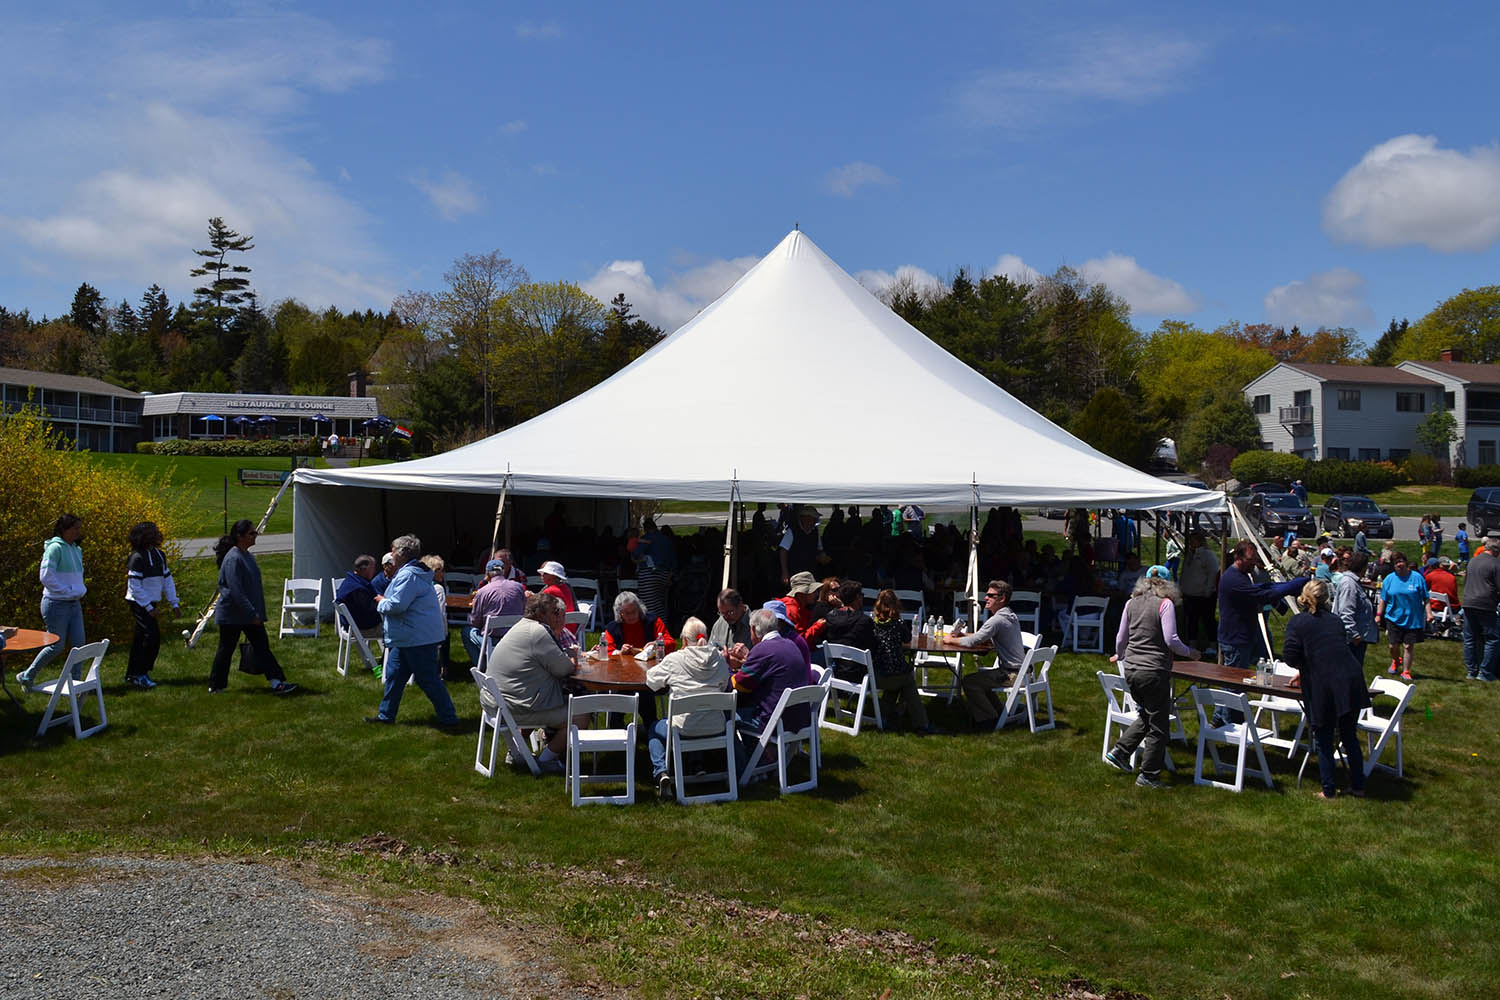 Nearly 400 guests from across MDI gathered for the annual Community Cookout